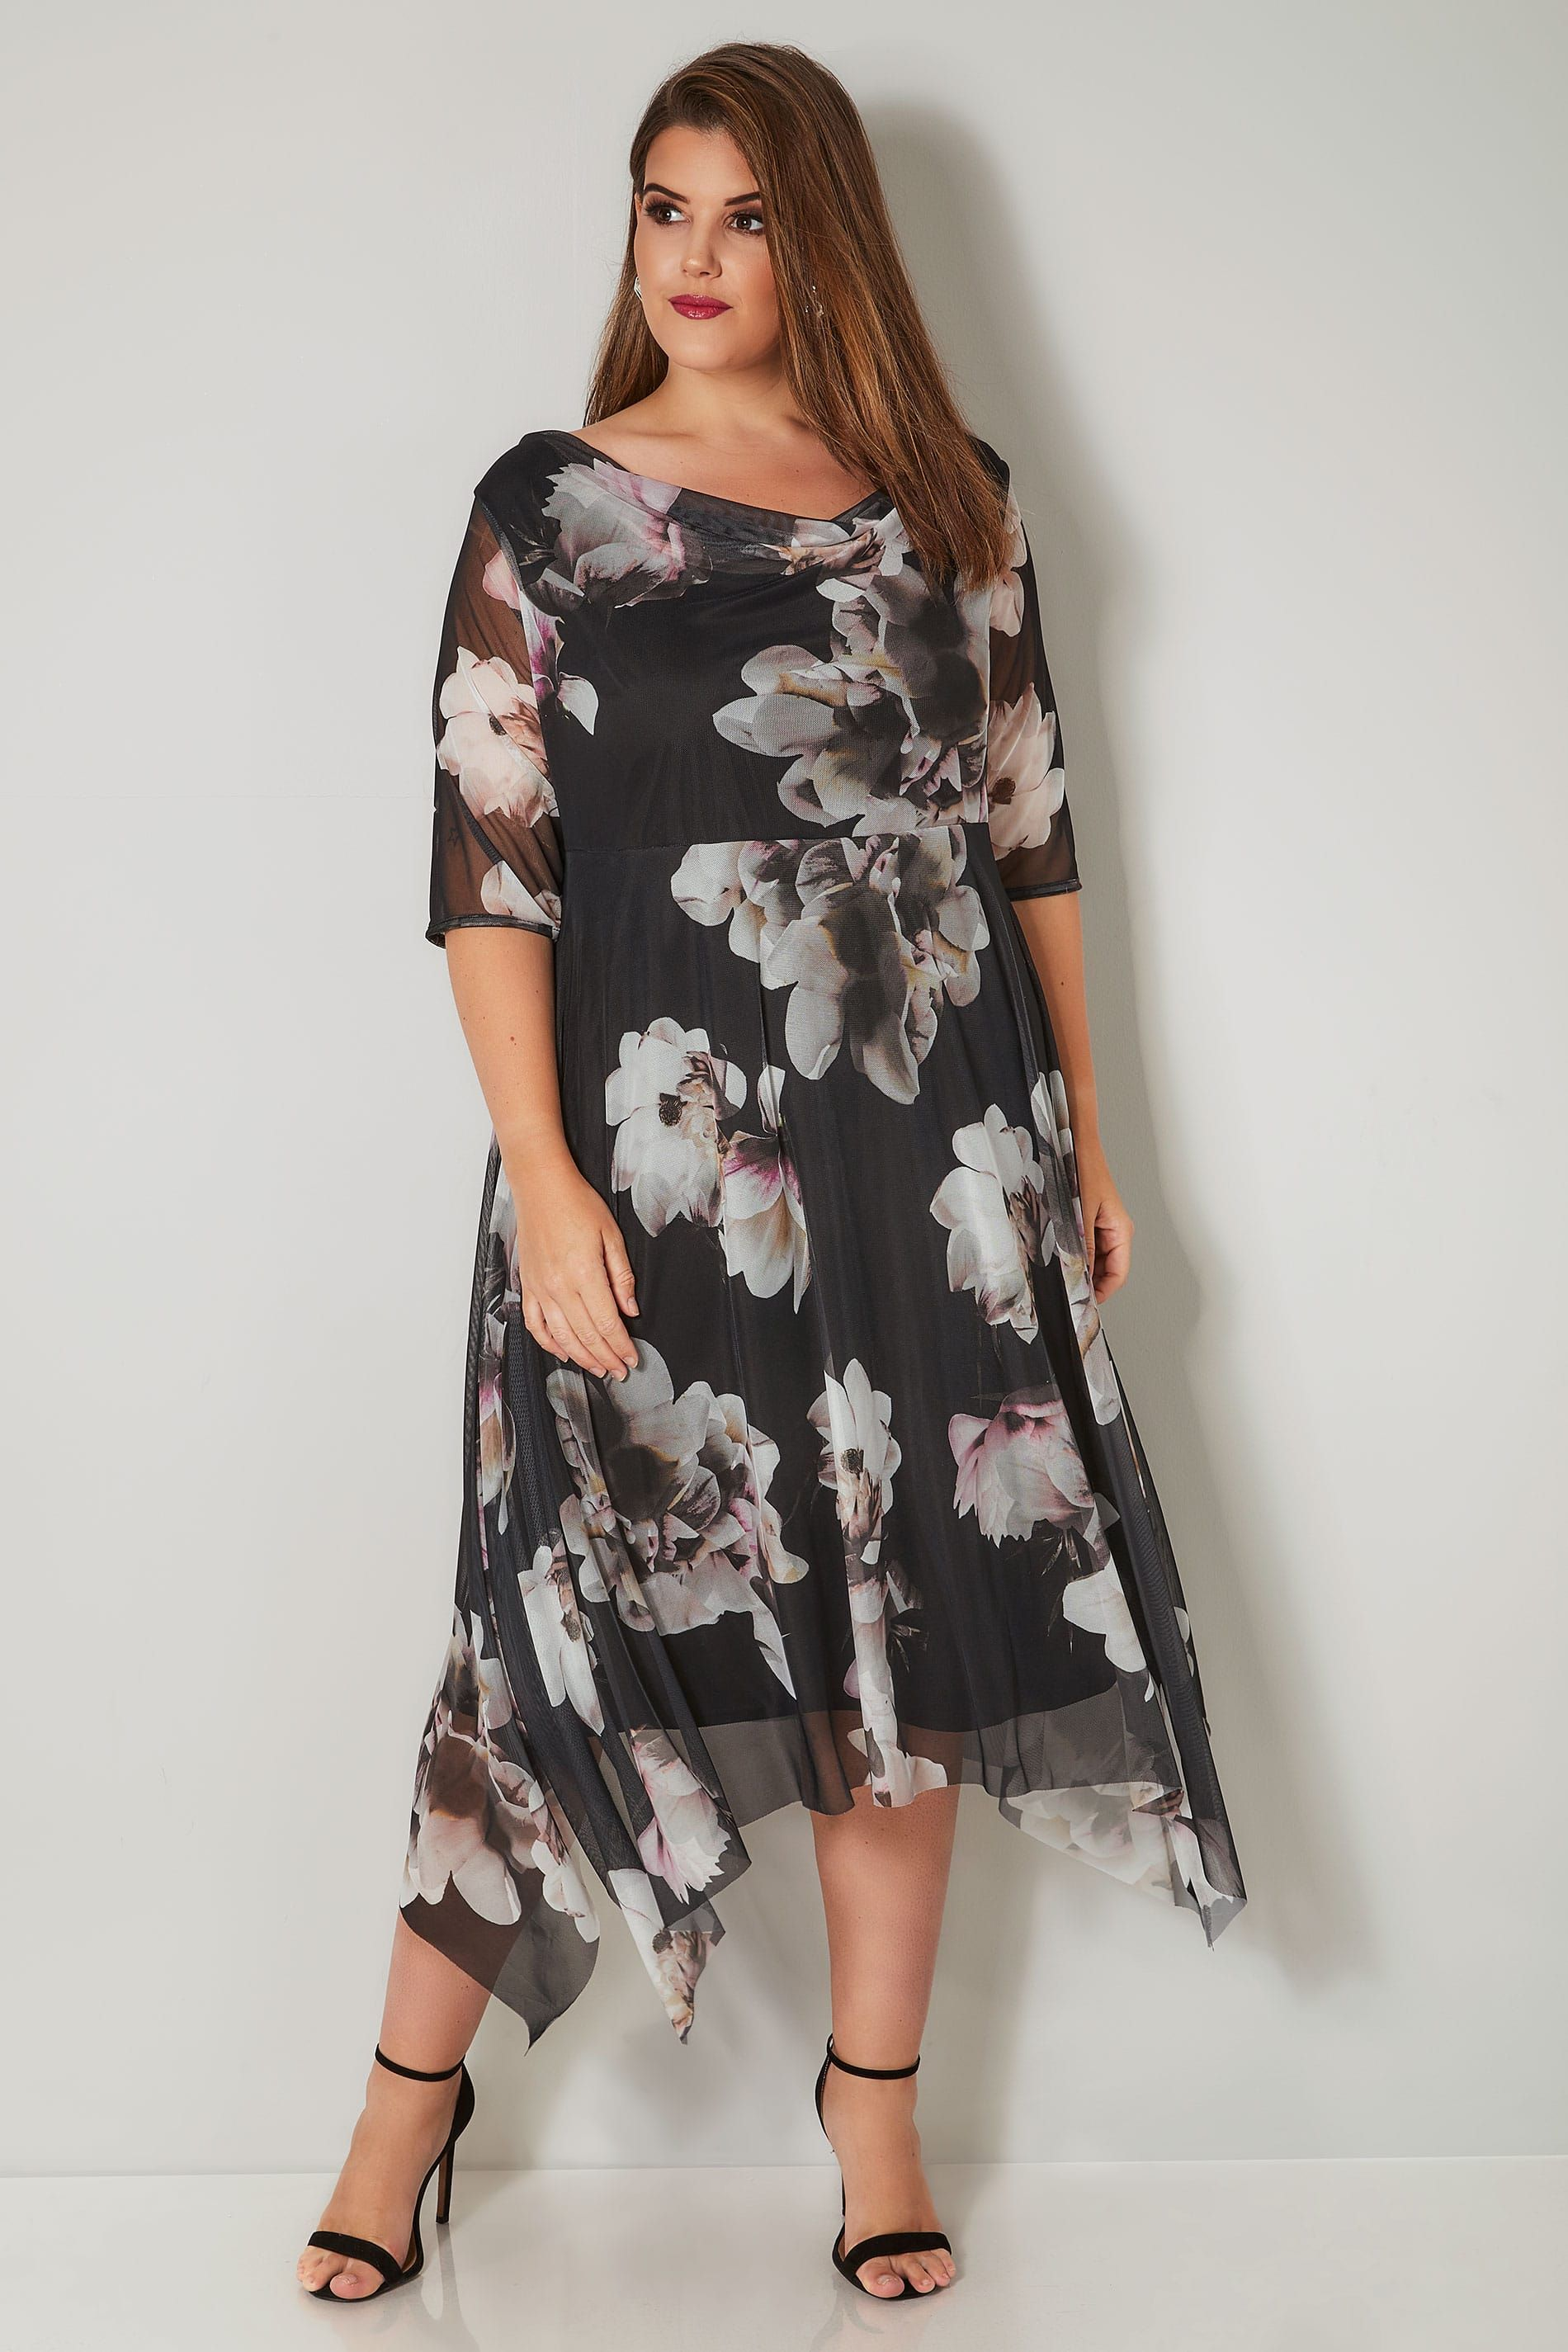 22 Chic Plus Size Bridesmaids Dresses A Blush Floral Maxi Dress With Short Sleeves And An Illu Bridesmaid Dresses Plus Size Maxi Dress Plus Size Maxi Dresses